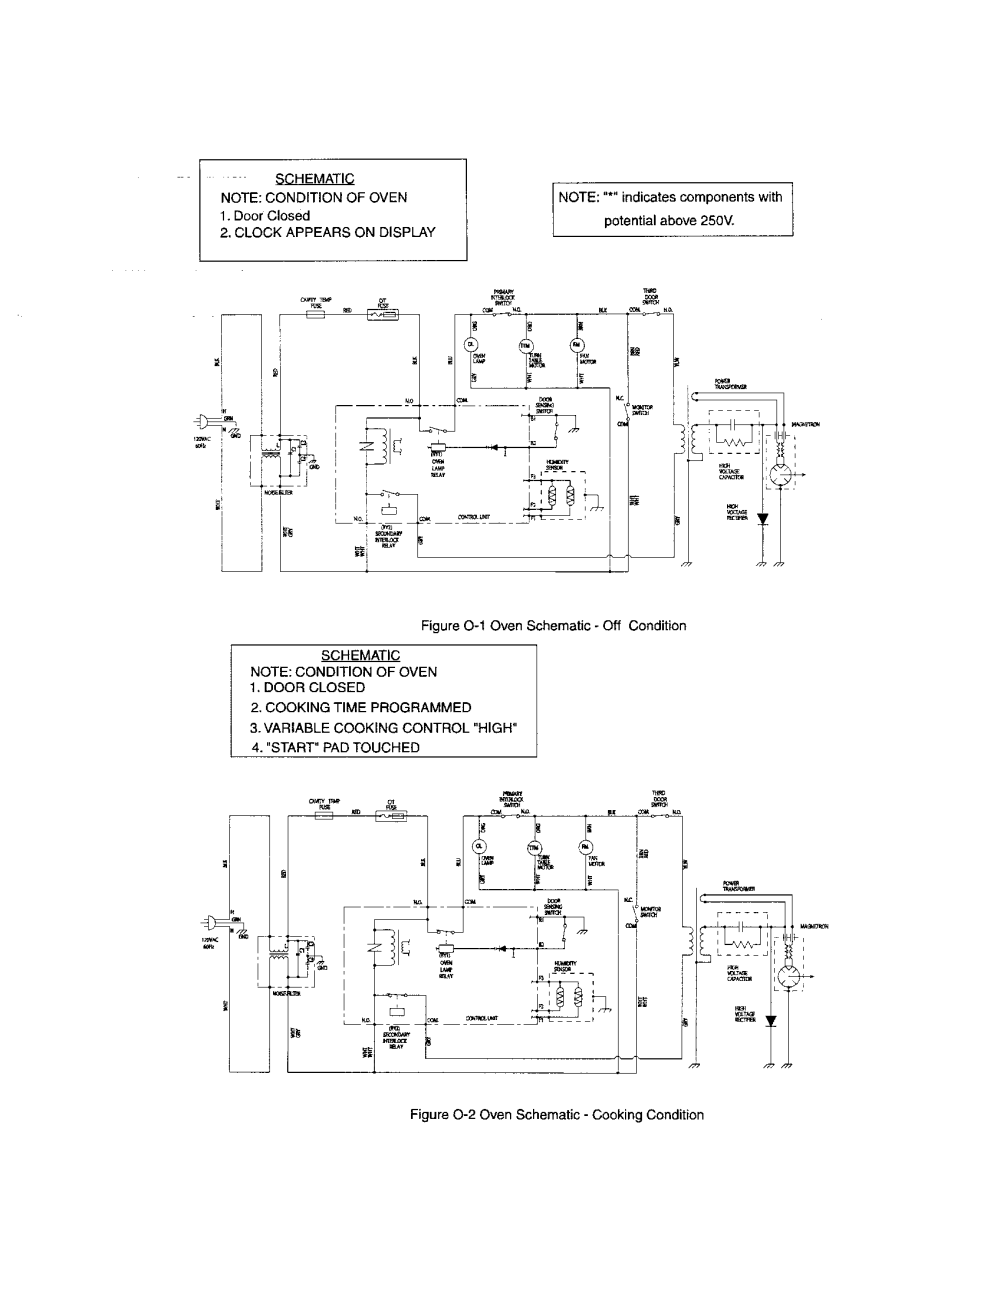 medium resolution of electrolux model ei24mo45iba countertop microwave genuine parts wiring schematic diagram parts list for model ei24mo45iba electrolux